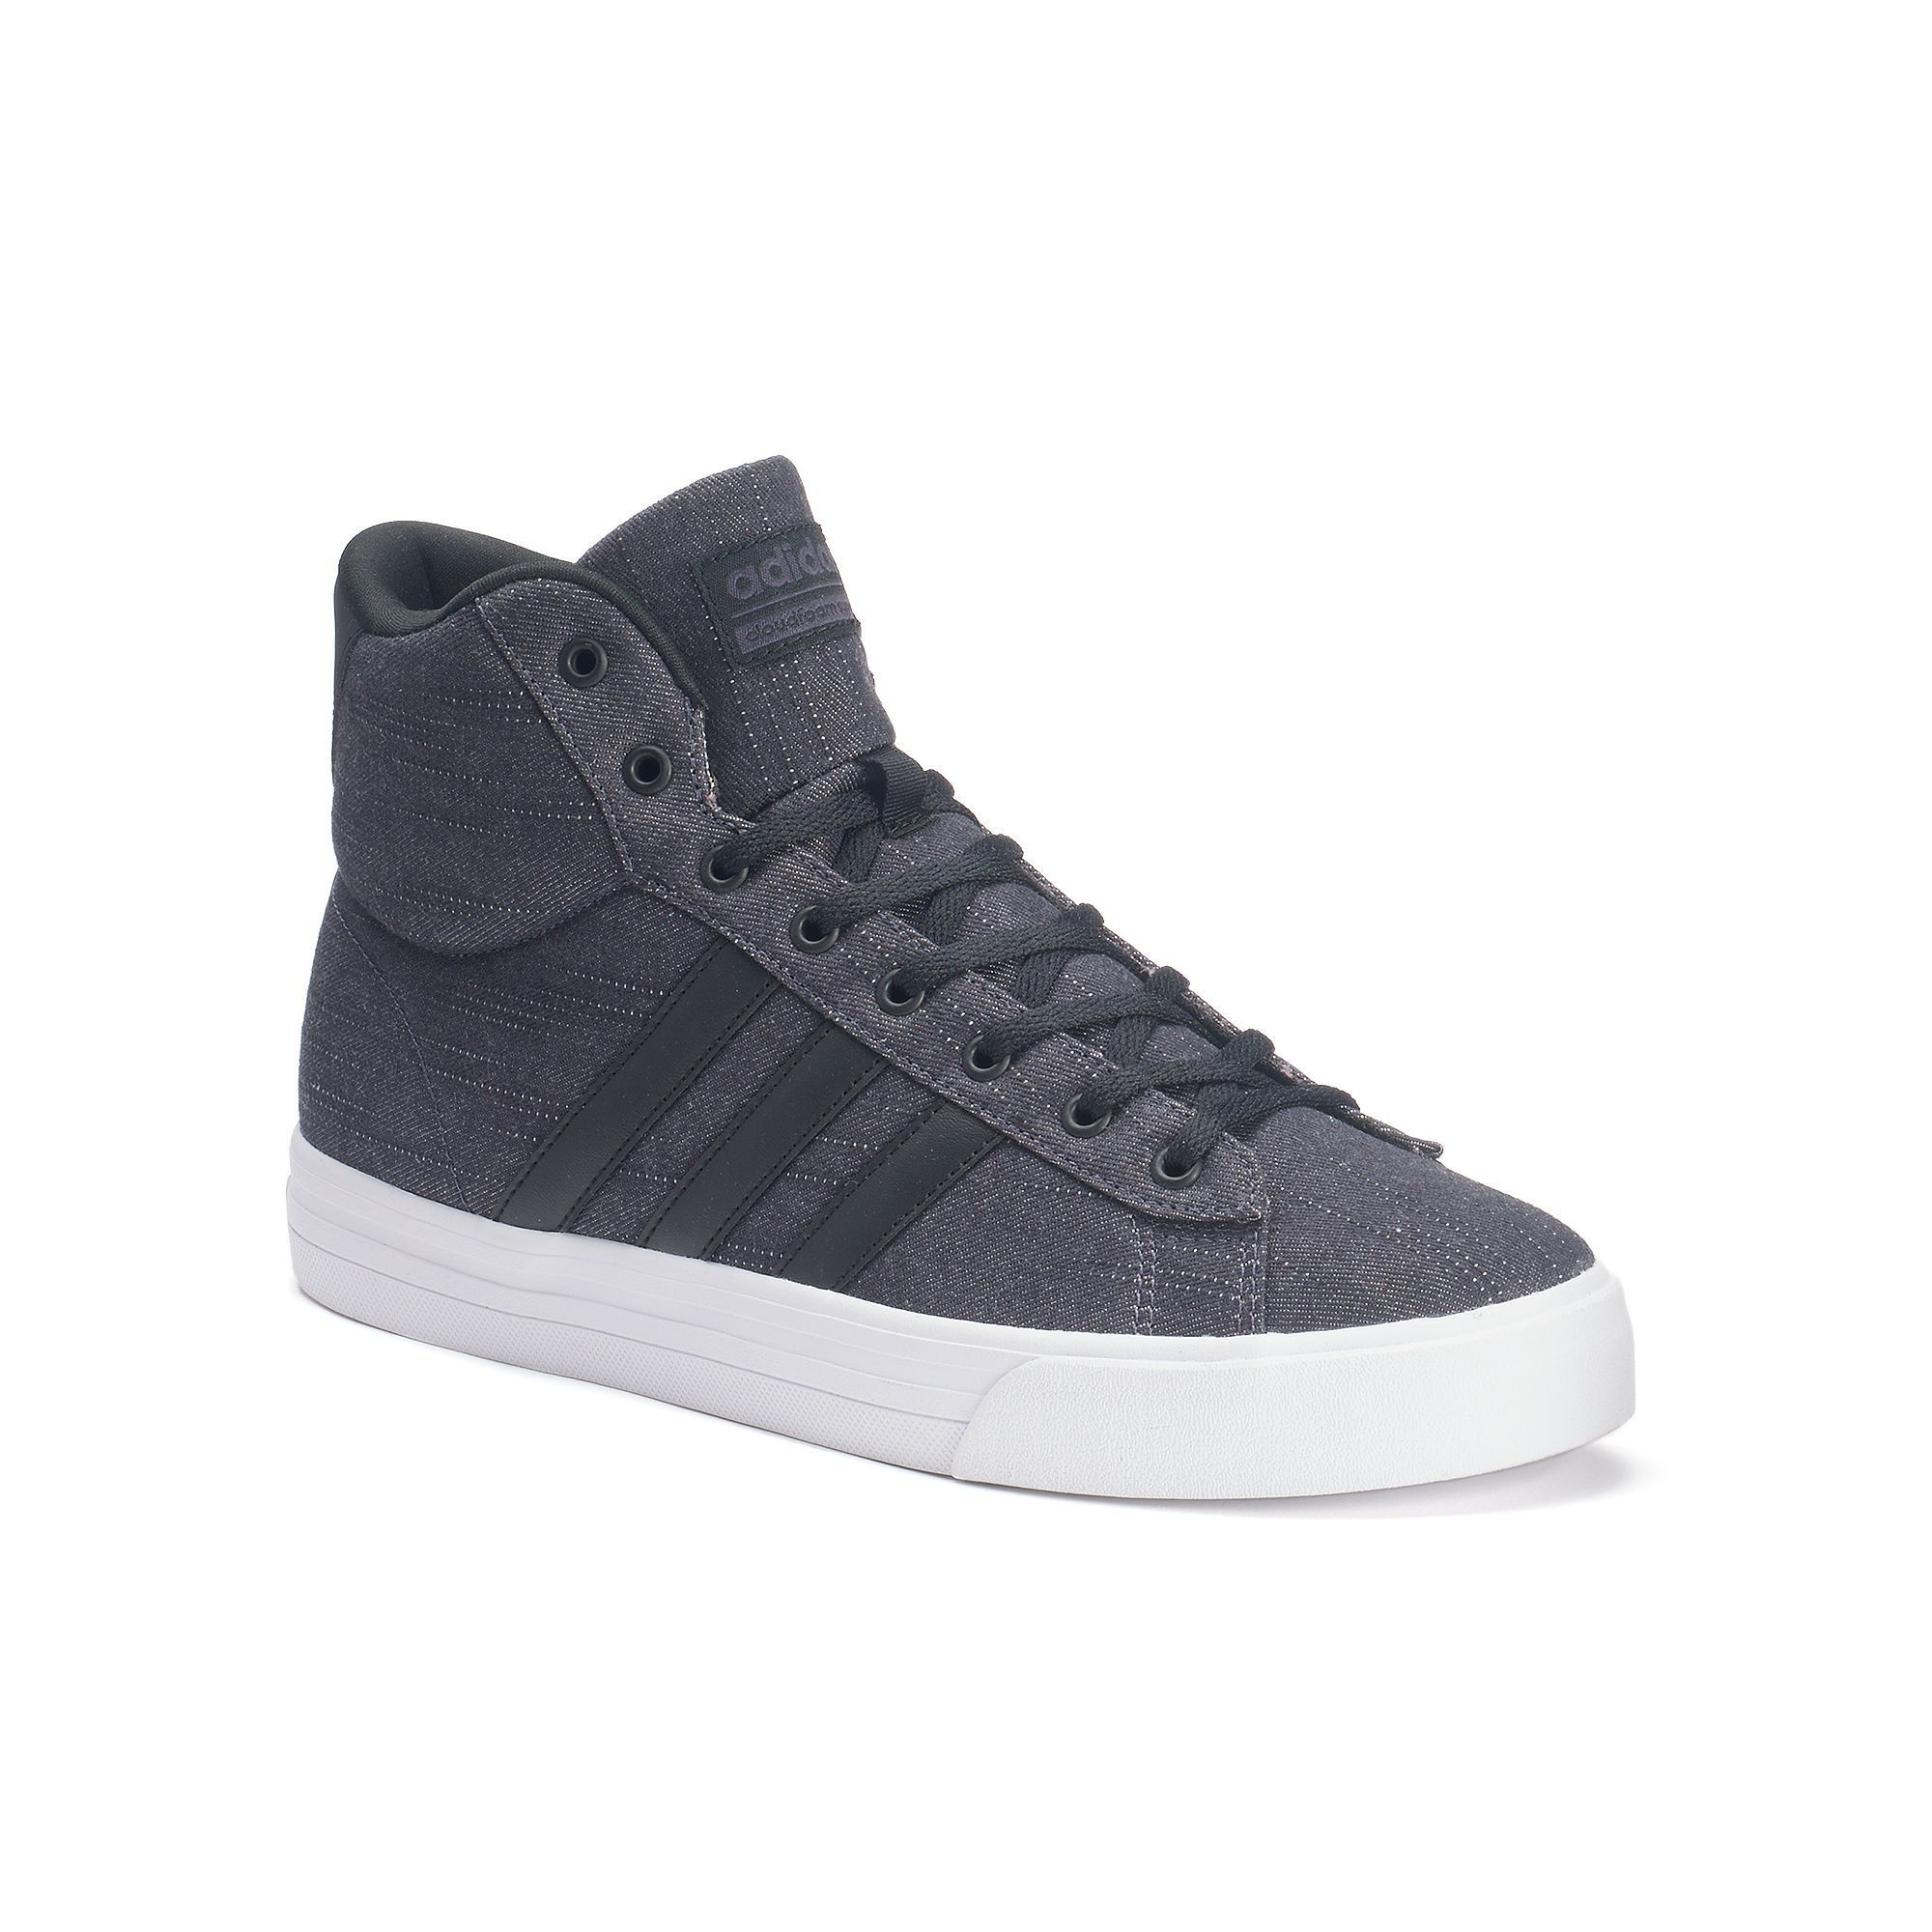 adidas cloudfoam super daily shoes men's